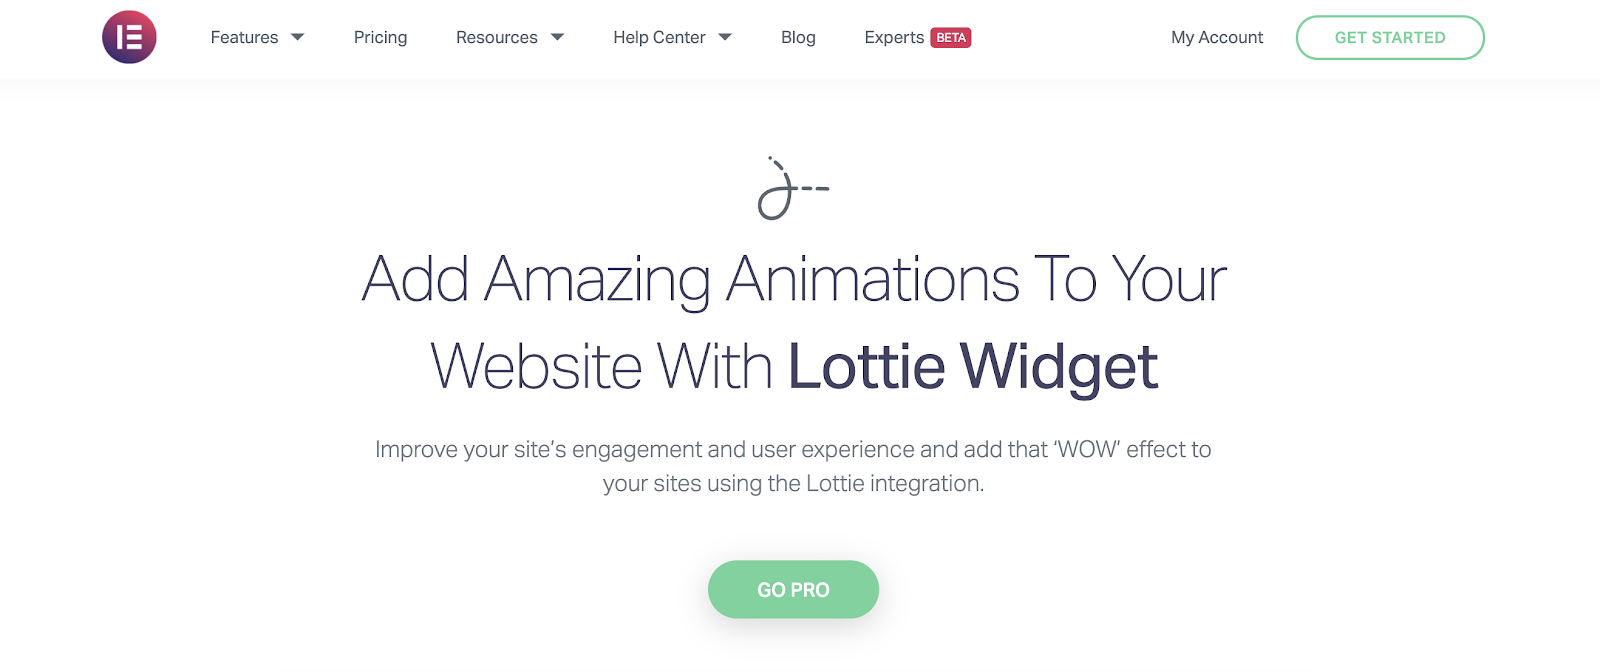 Elementor product page for the Lottie Widget